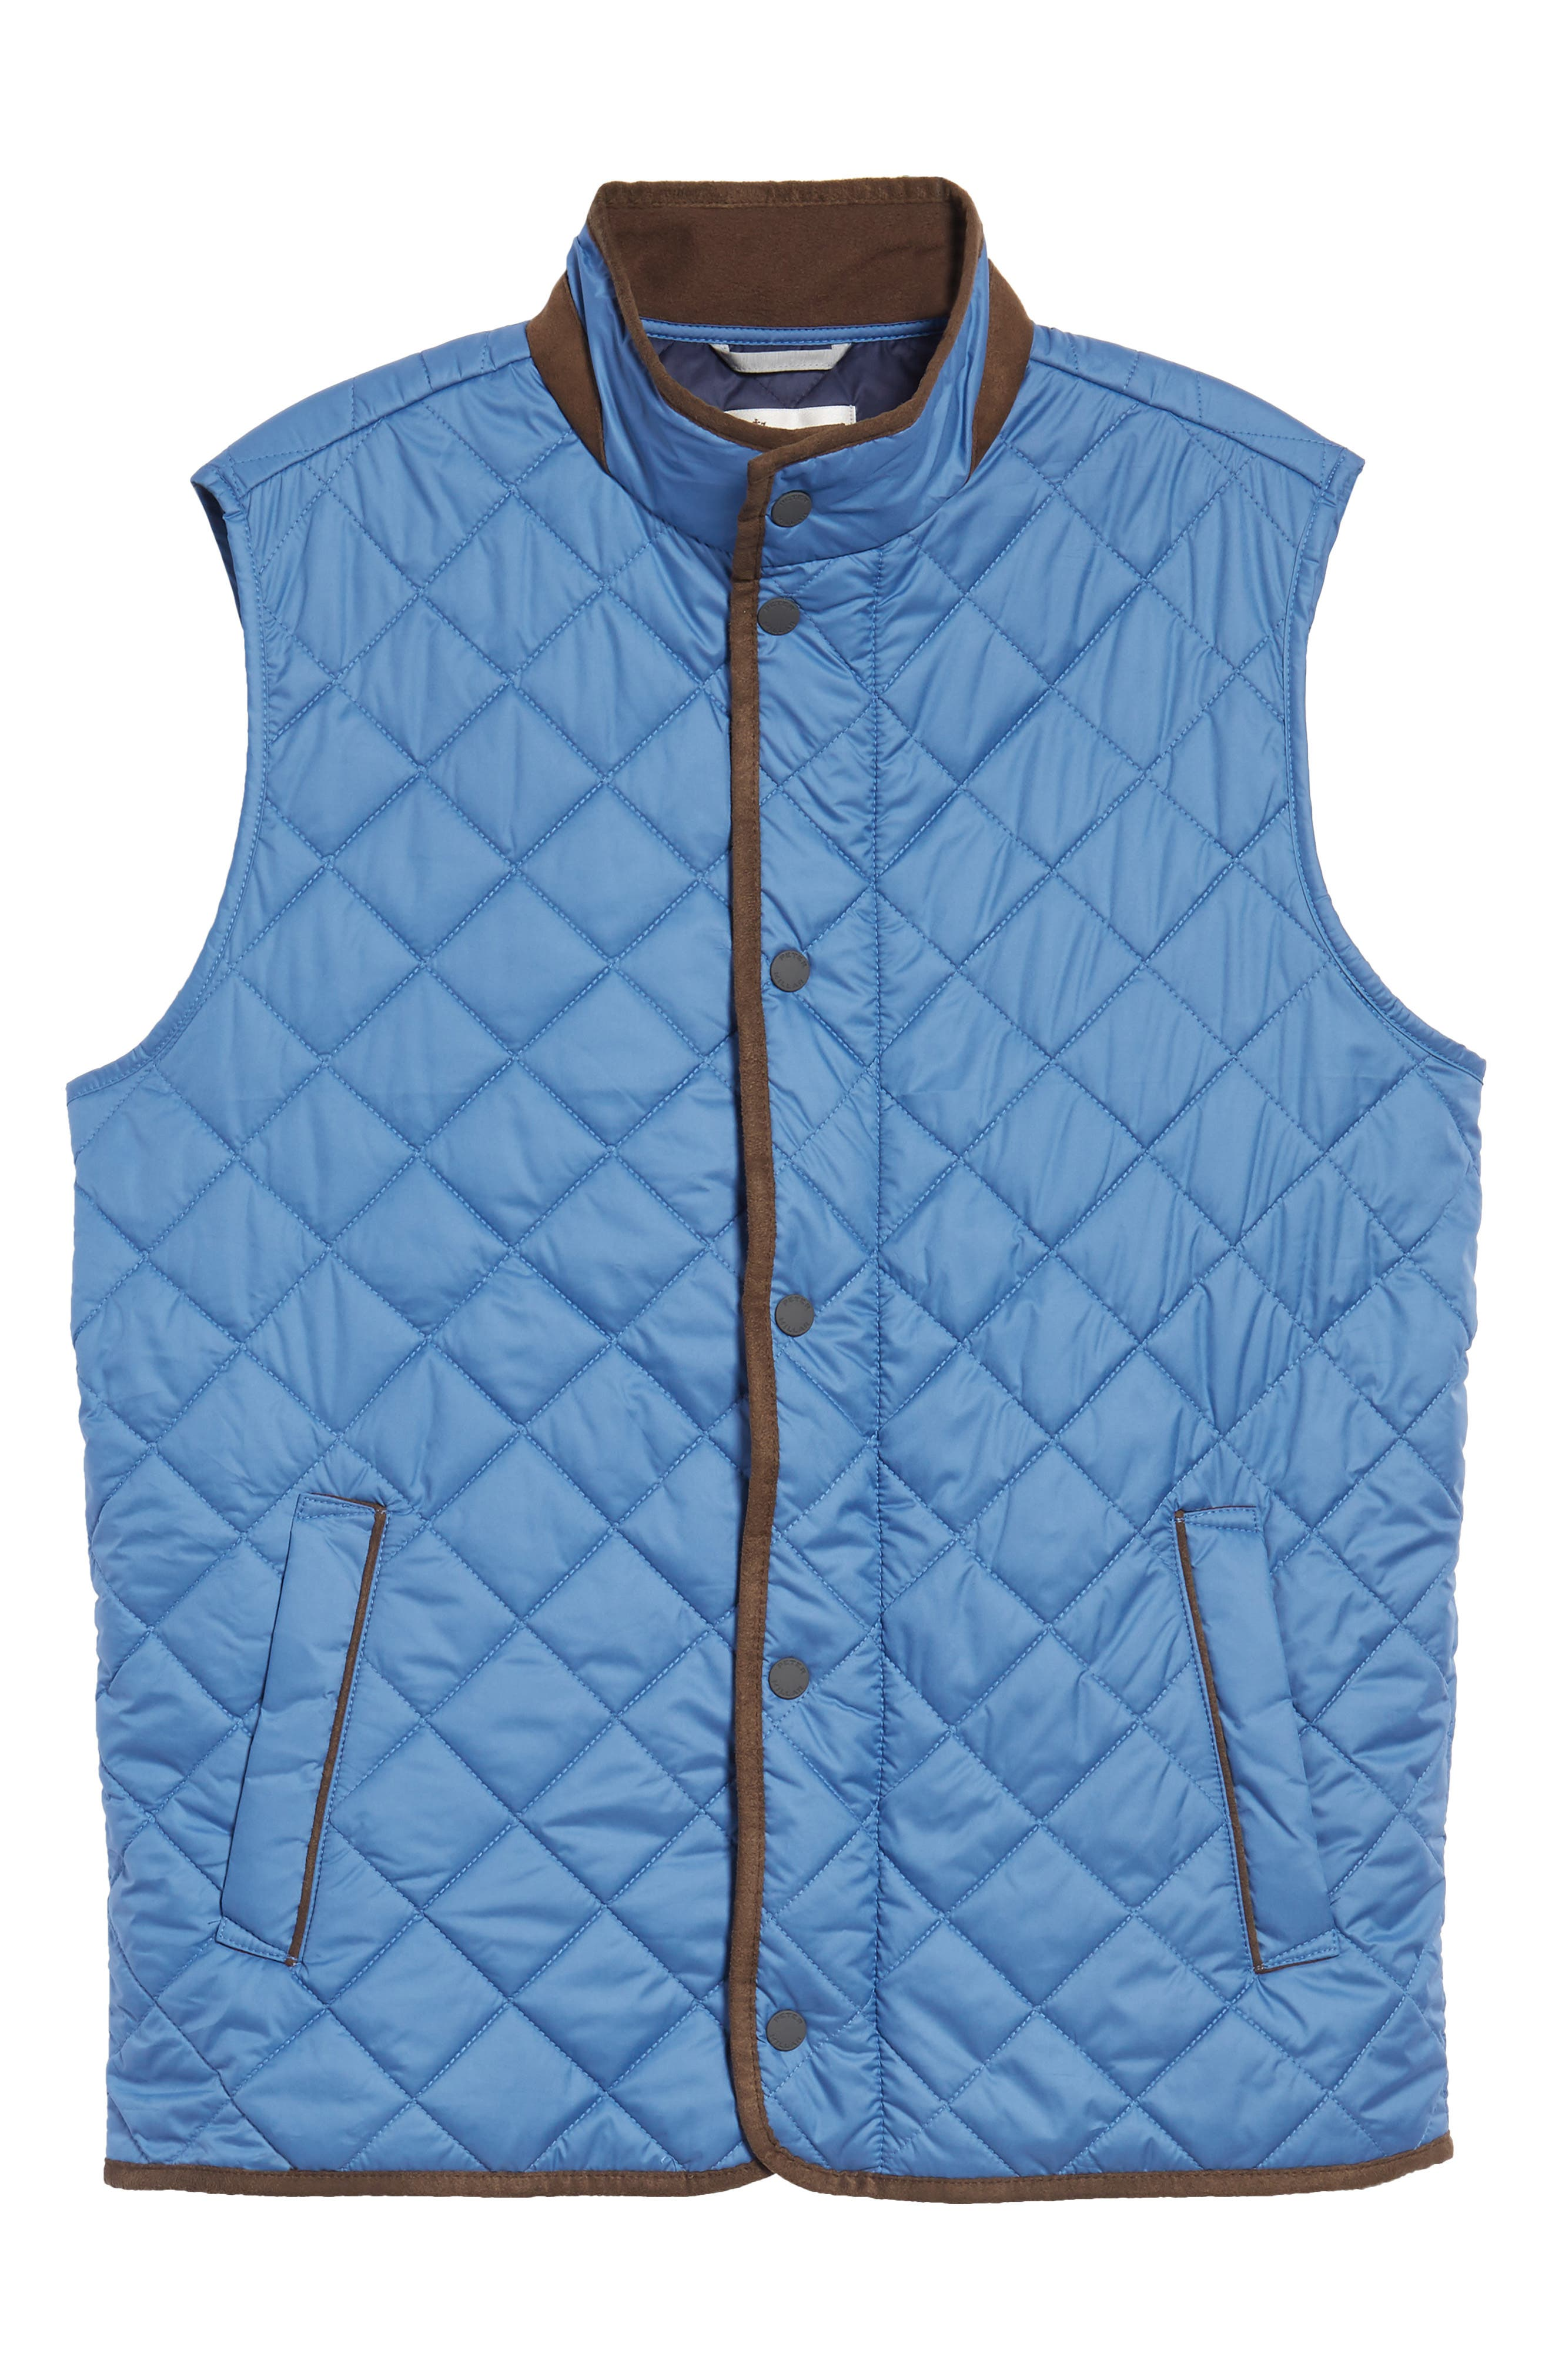 Essex Quilted Vest,                             Alternate thumbnail 6, color,                             Moon Blue